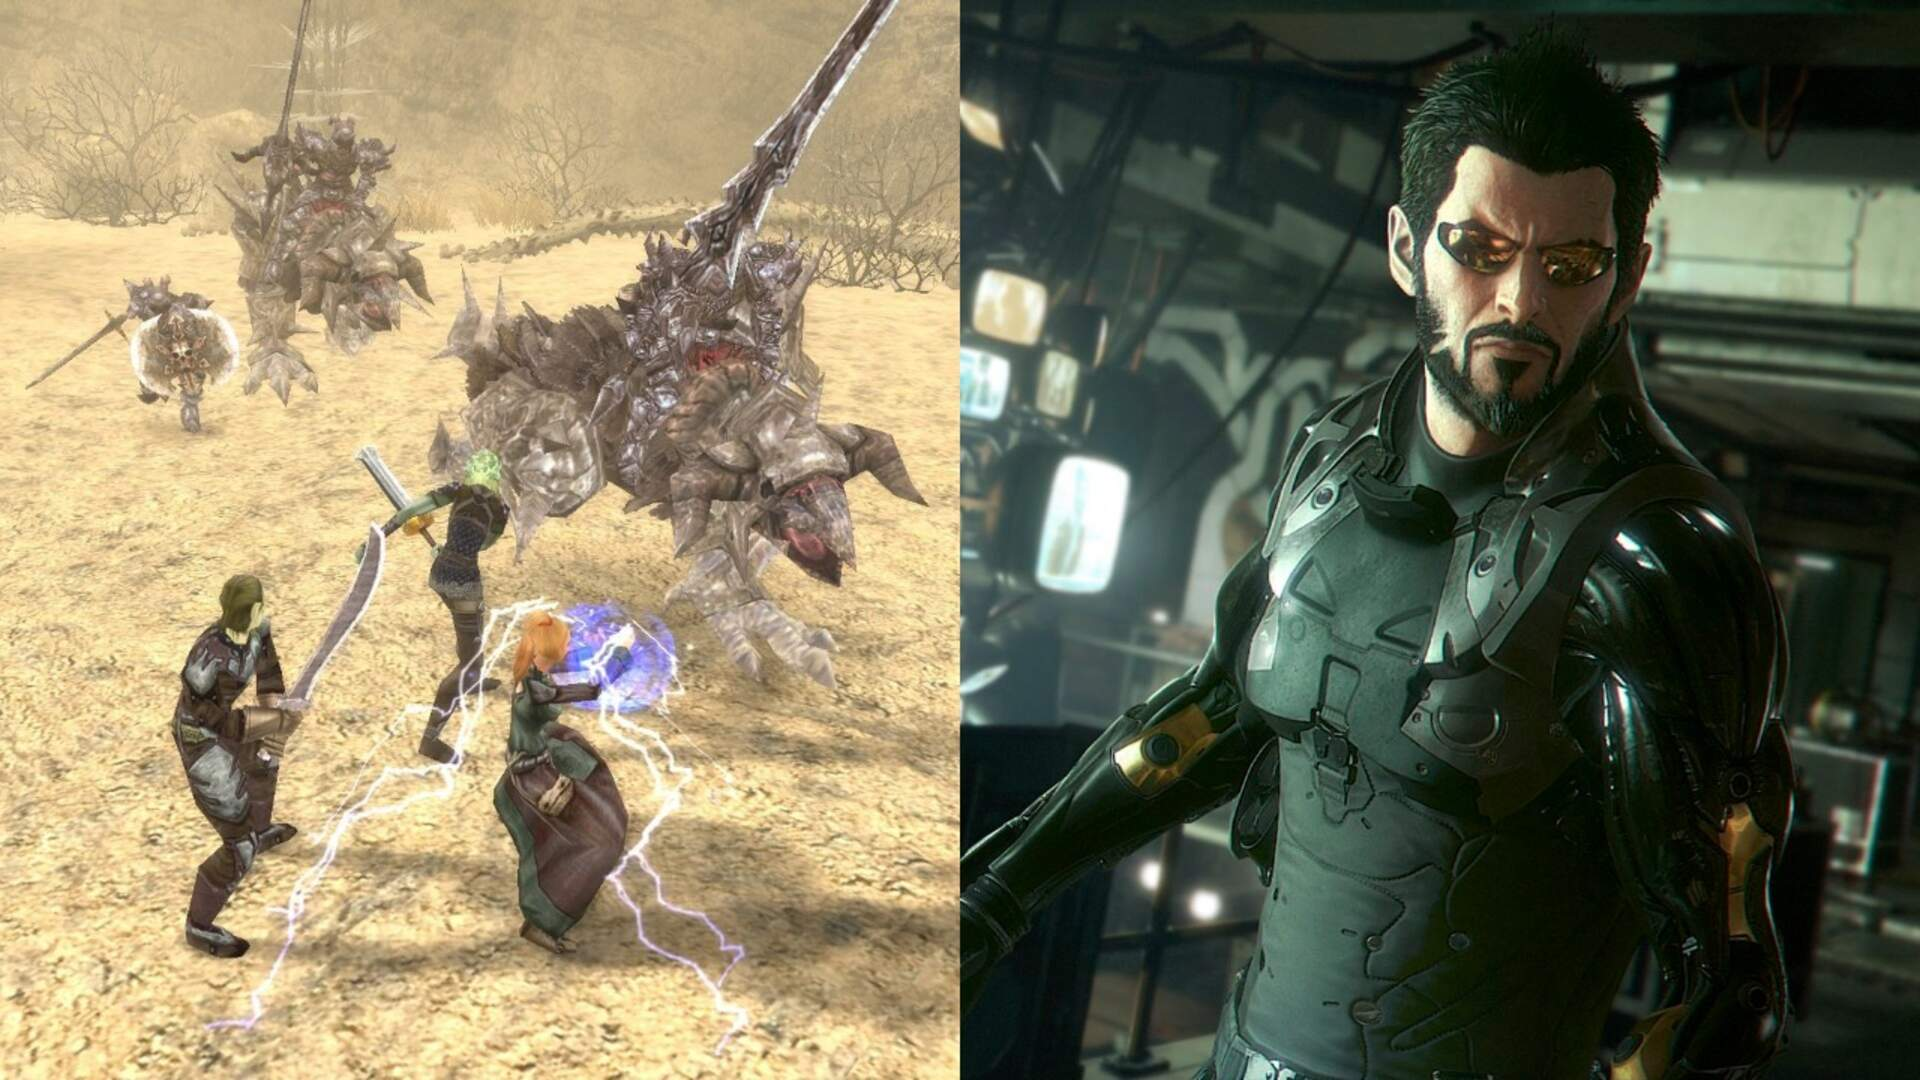 Dungeon Siege and the Newer Deus Ex Games Are on Sale at an Absolute Steal